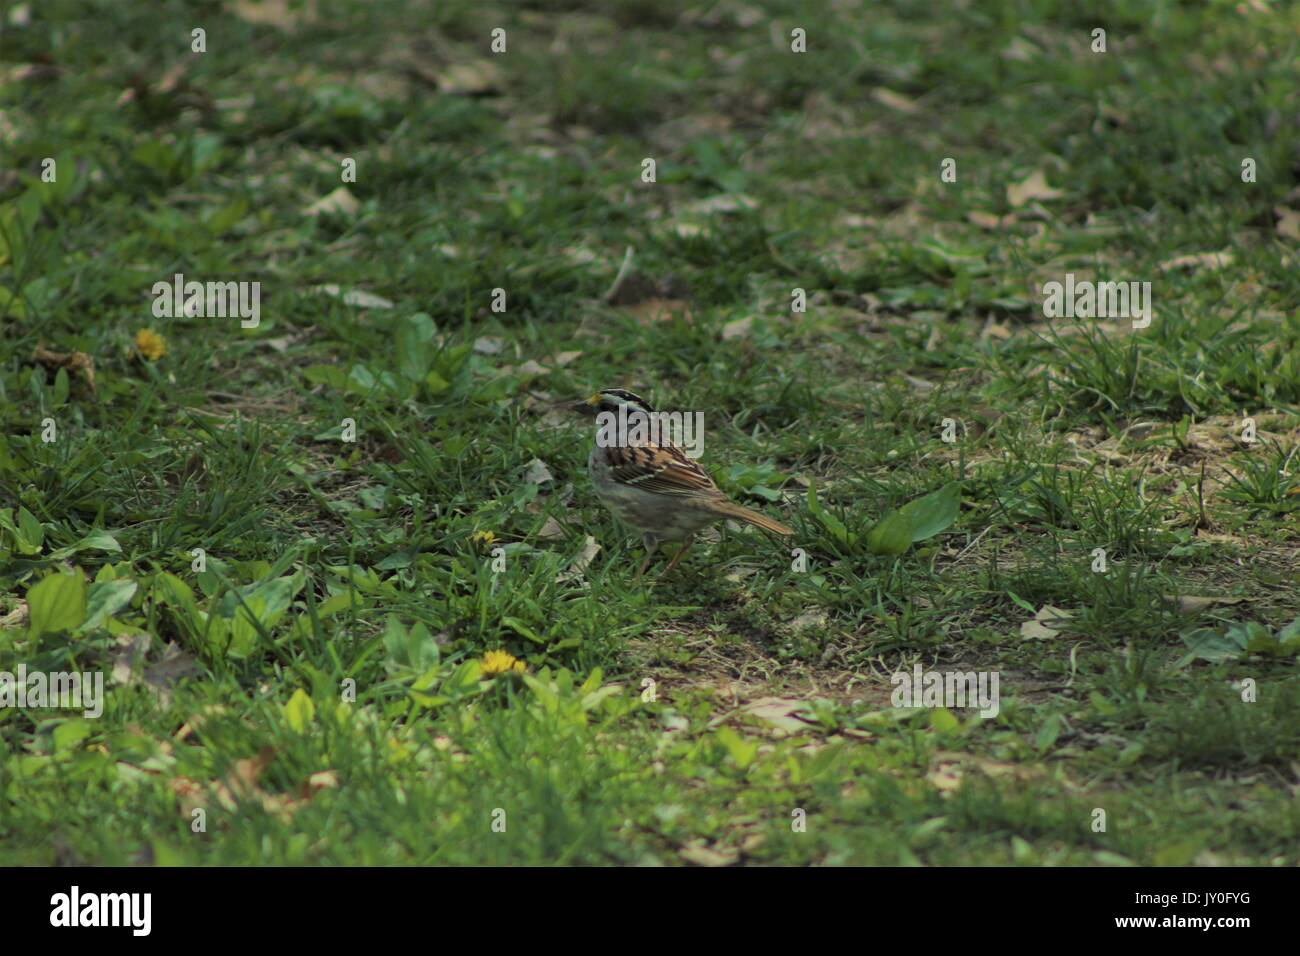 Young summer bird centered in the photo with brown and black feathers. - Stock Image